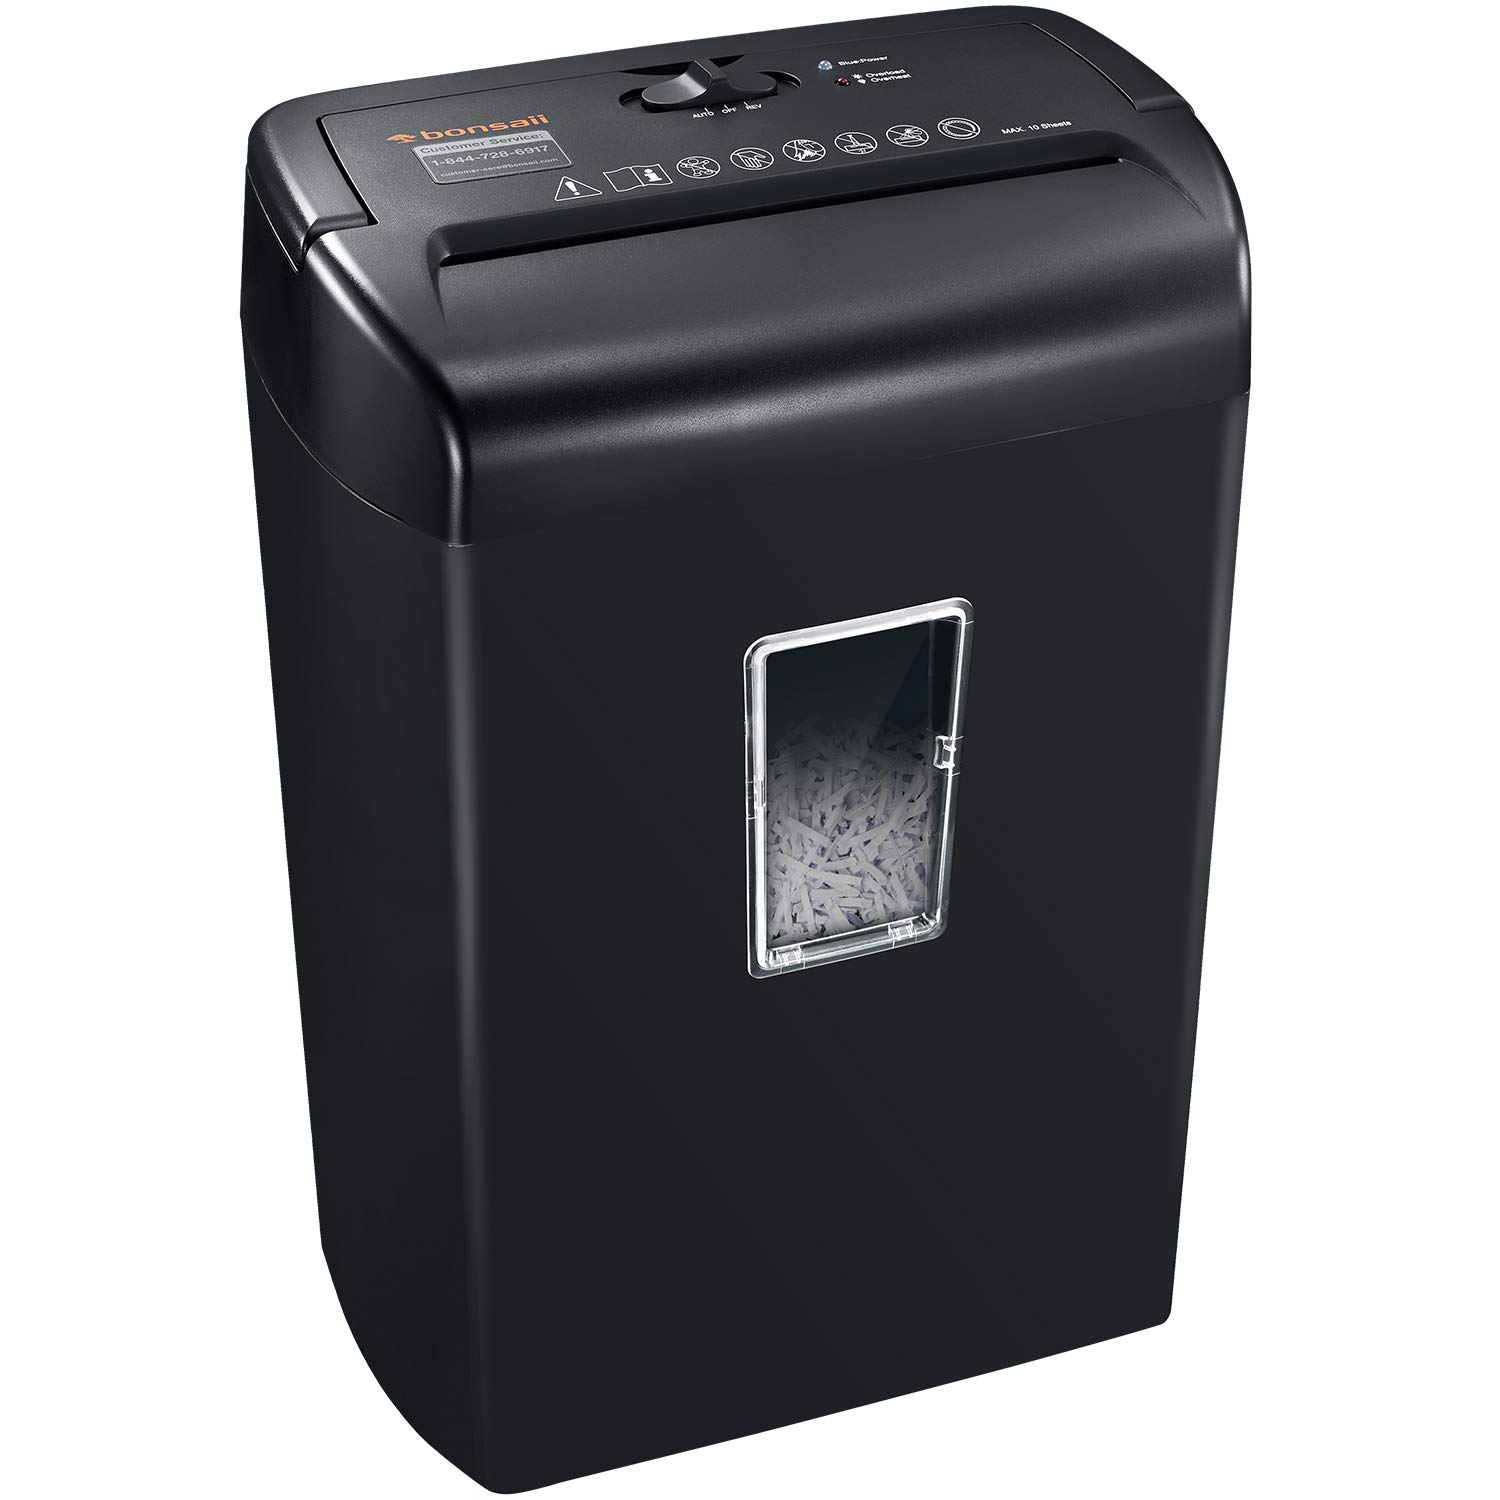 Bonsaii 10-Sheets Cross-Cut Paper and Credit Card Shredder with 5.5 Gallons Wastebasket Capacity and Transparent Window, Black (C209-D) by bonsaii